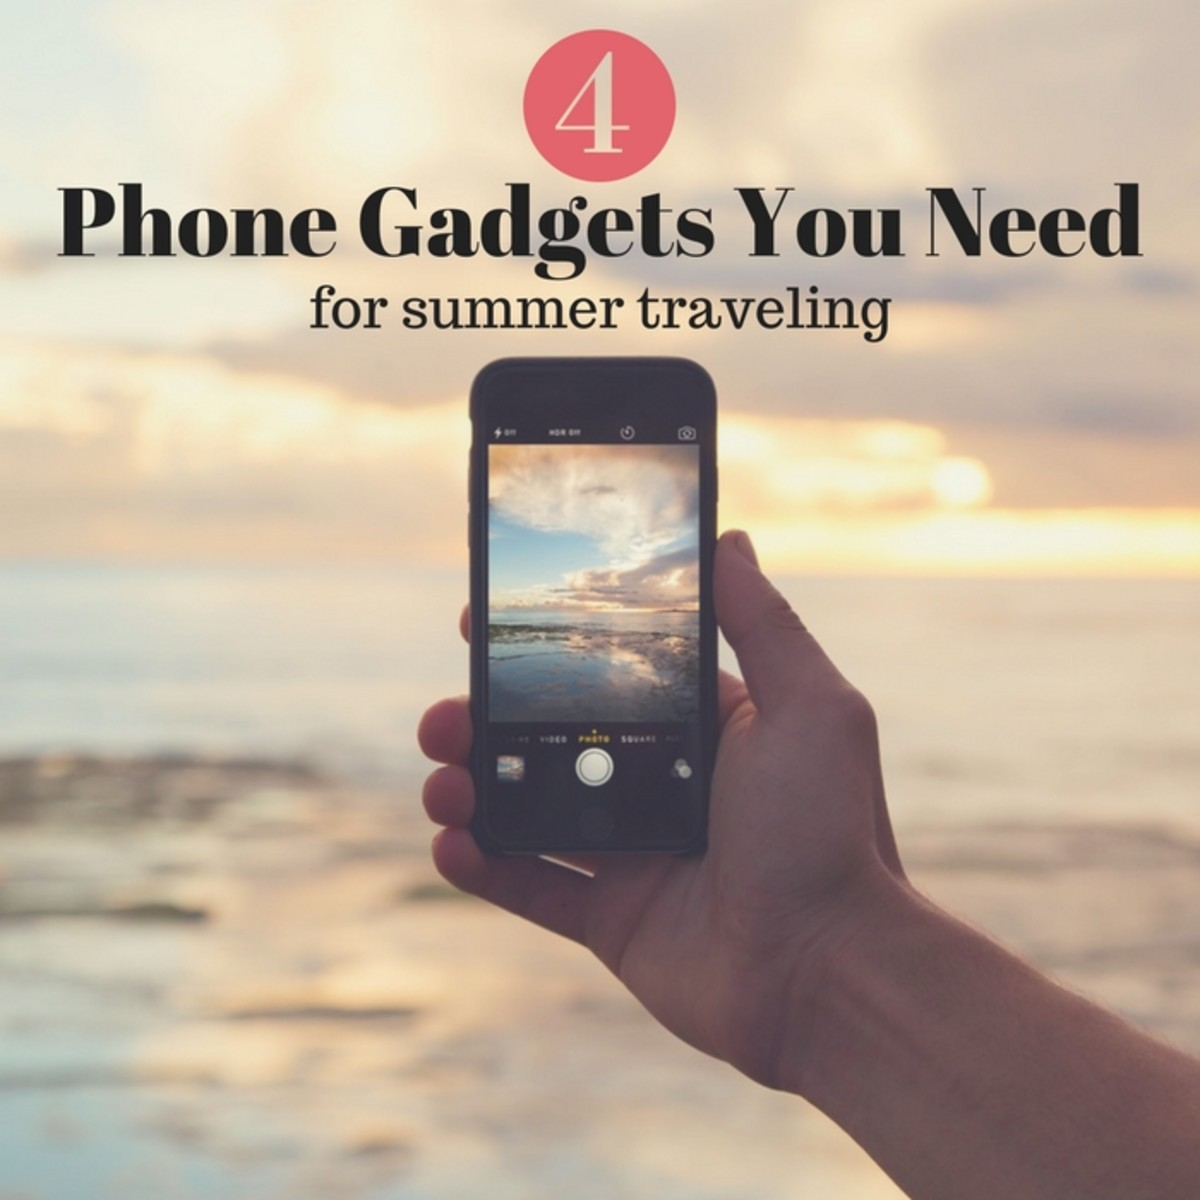 4 Phone Gadgets You Need for Summer Travels